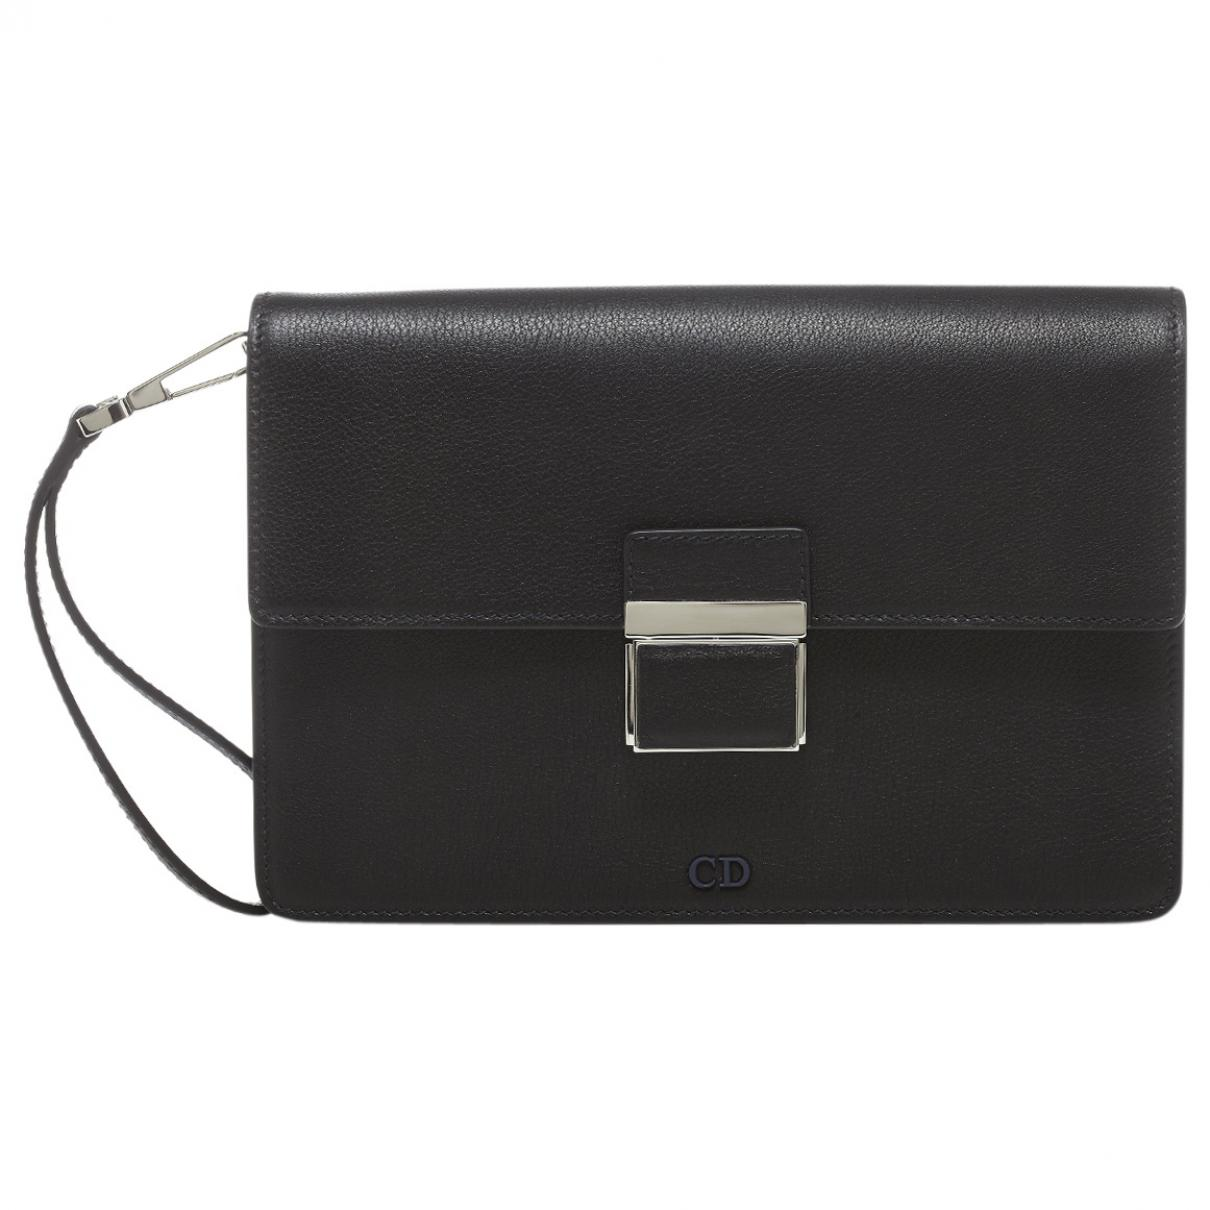 Dior Pre-owned - Patent leather clutch bag wkHdHLHbc